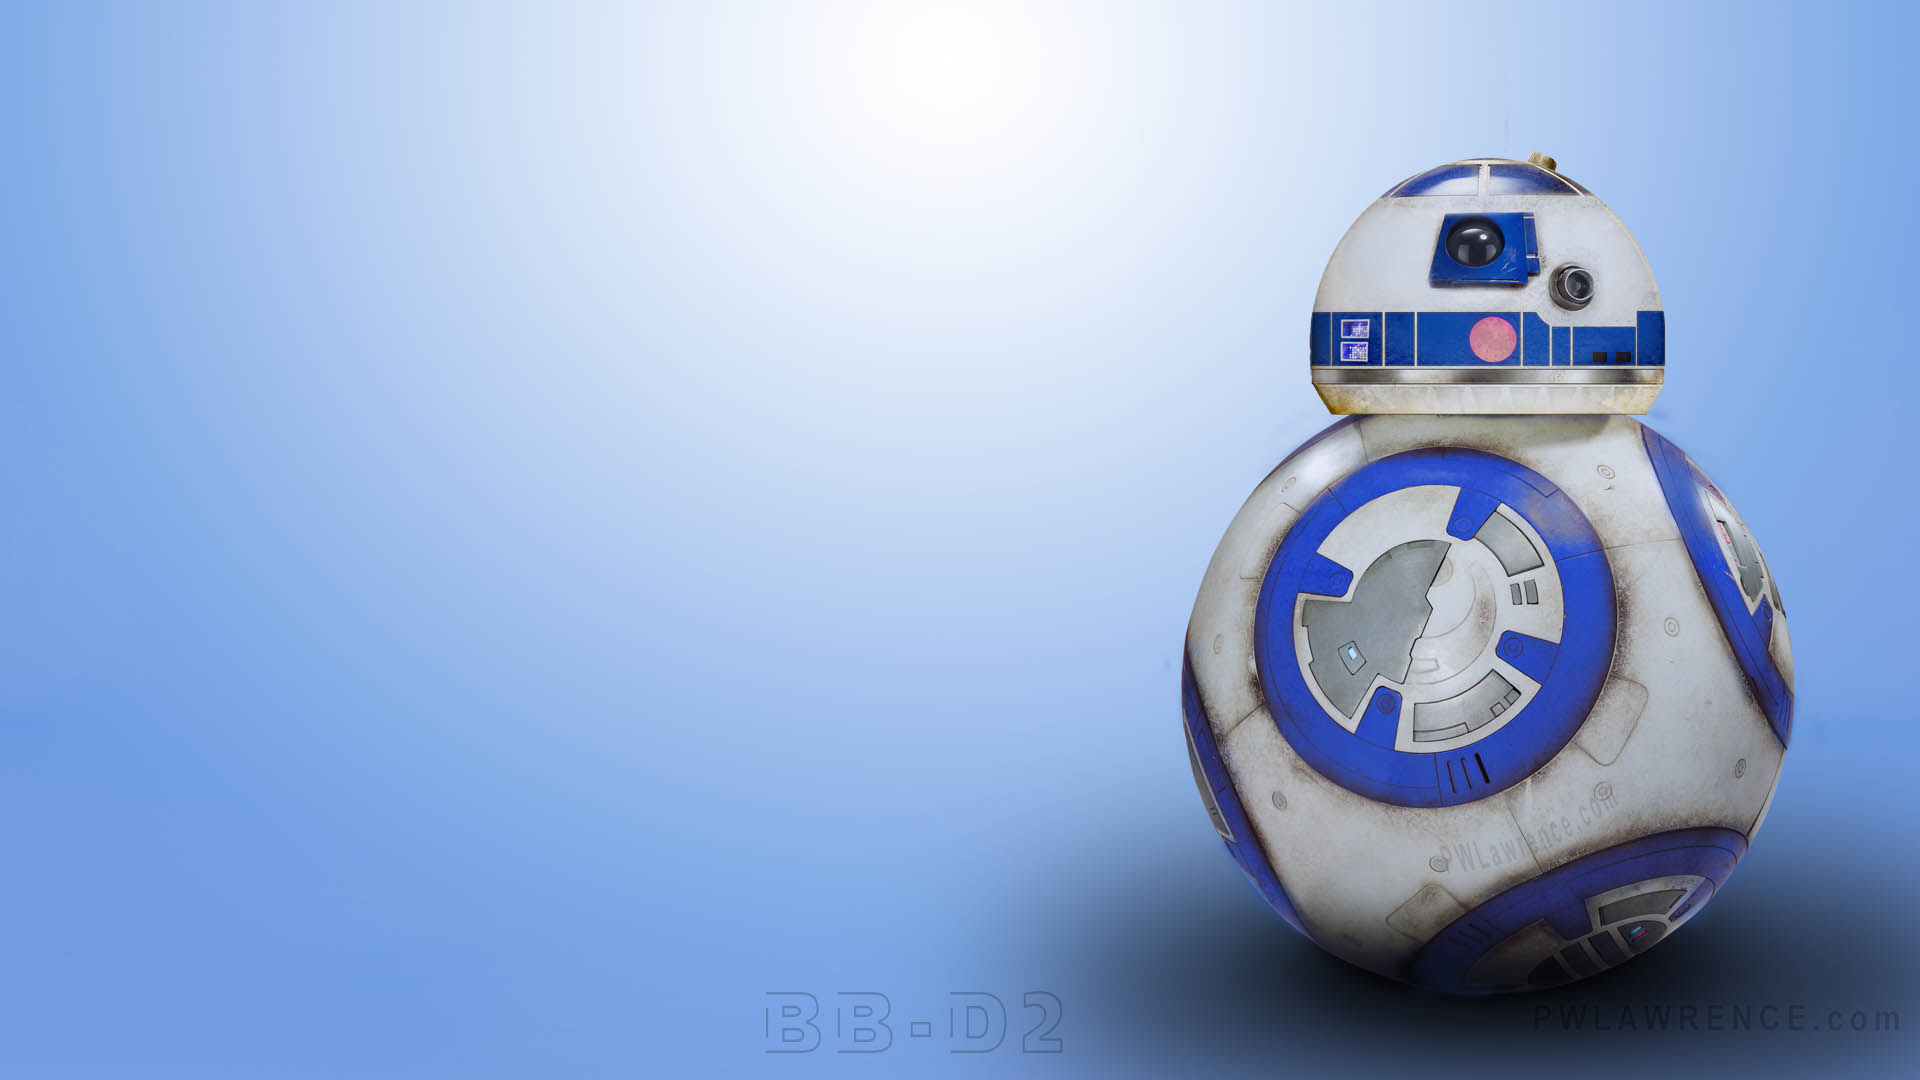 BB-D2 - wallpaper